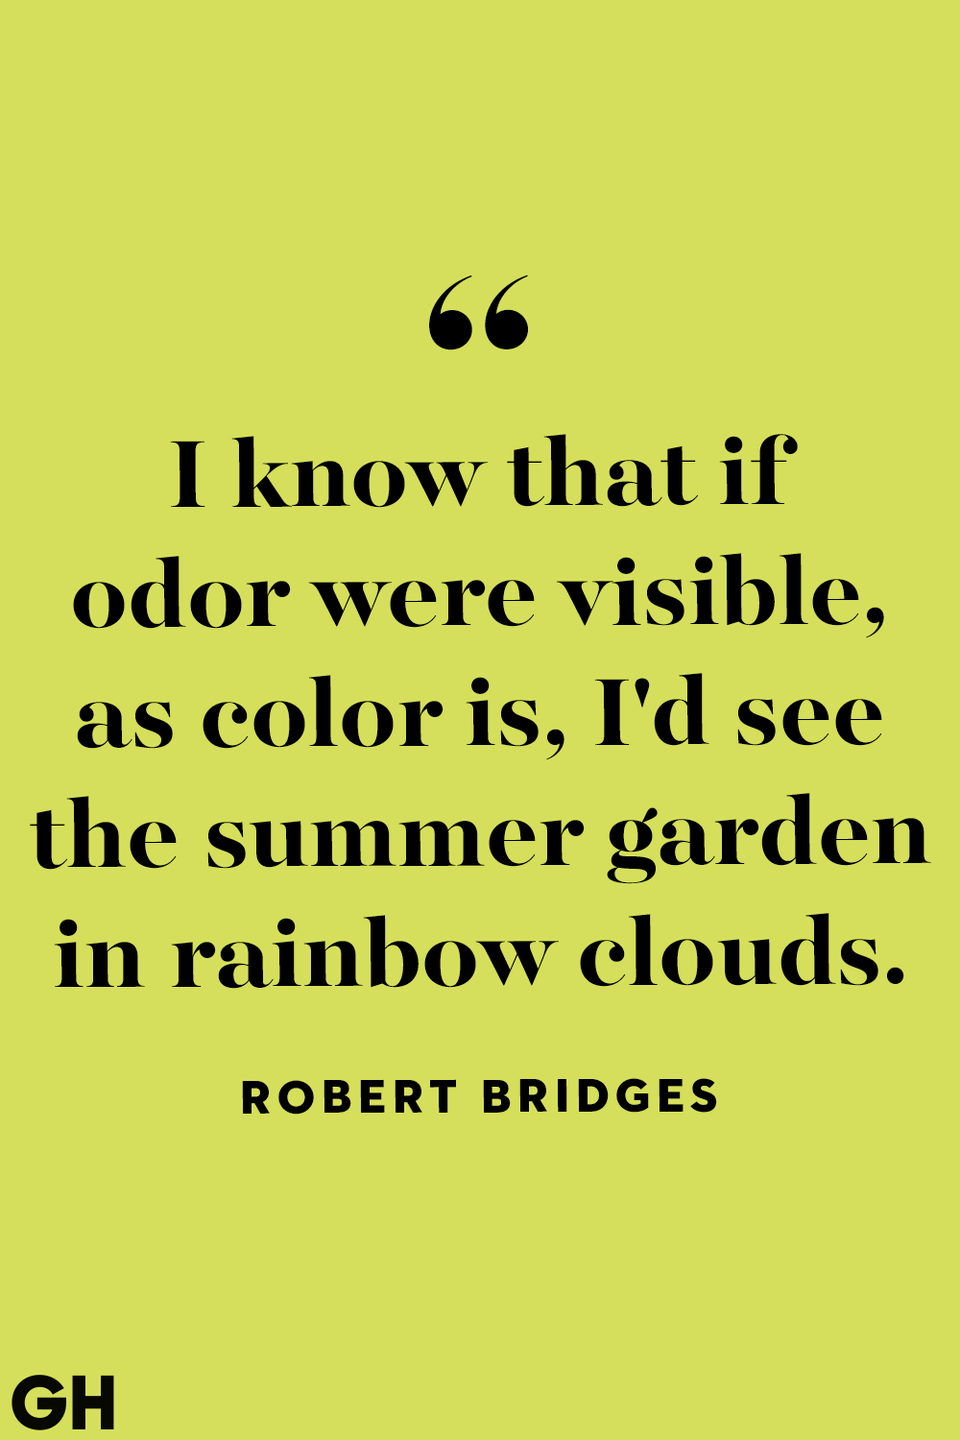 """<p>""""I know that if odor were visible, as color is, I'd see the summer garden in rainbow clouds.""""</p>"""